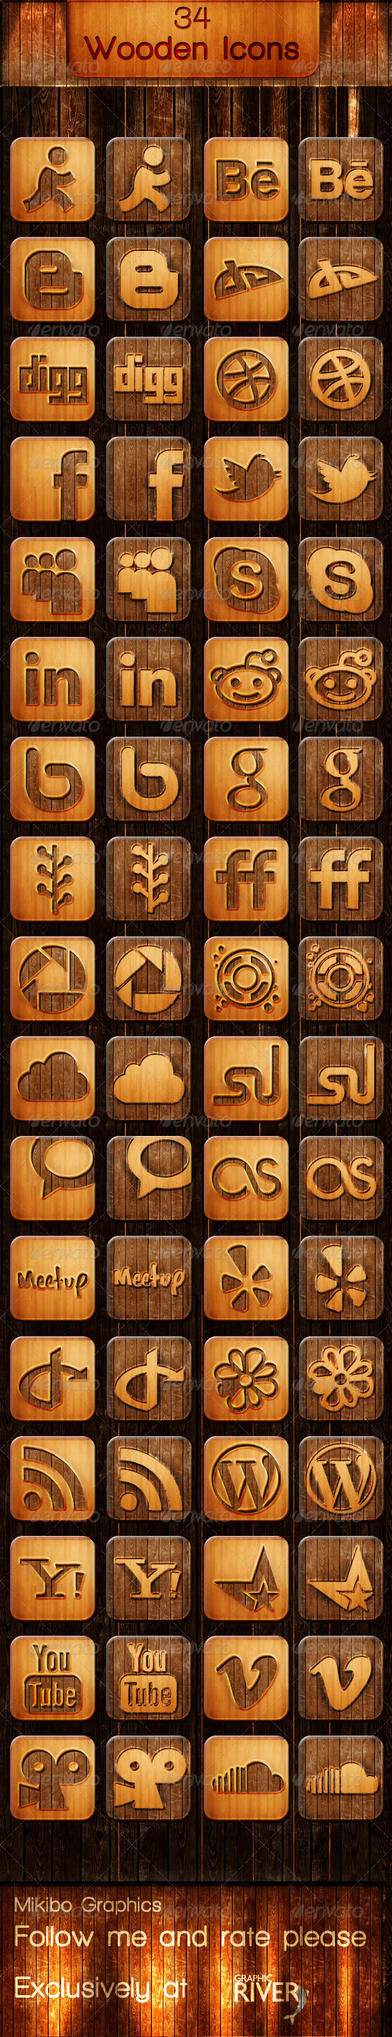 34 Wooden Icons by MikiMikibo